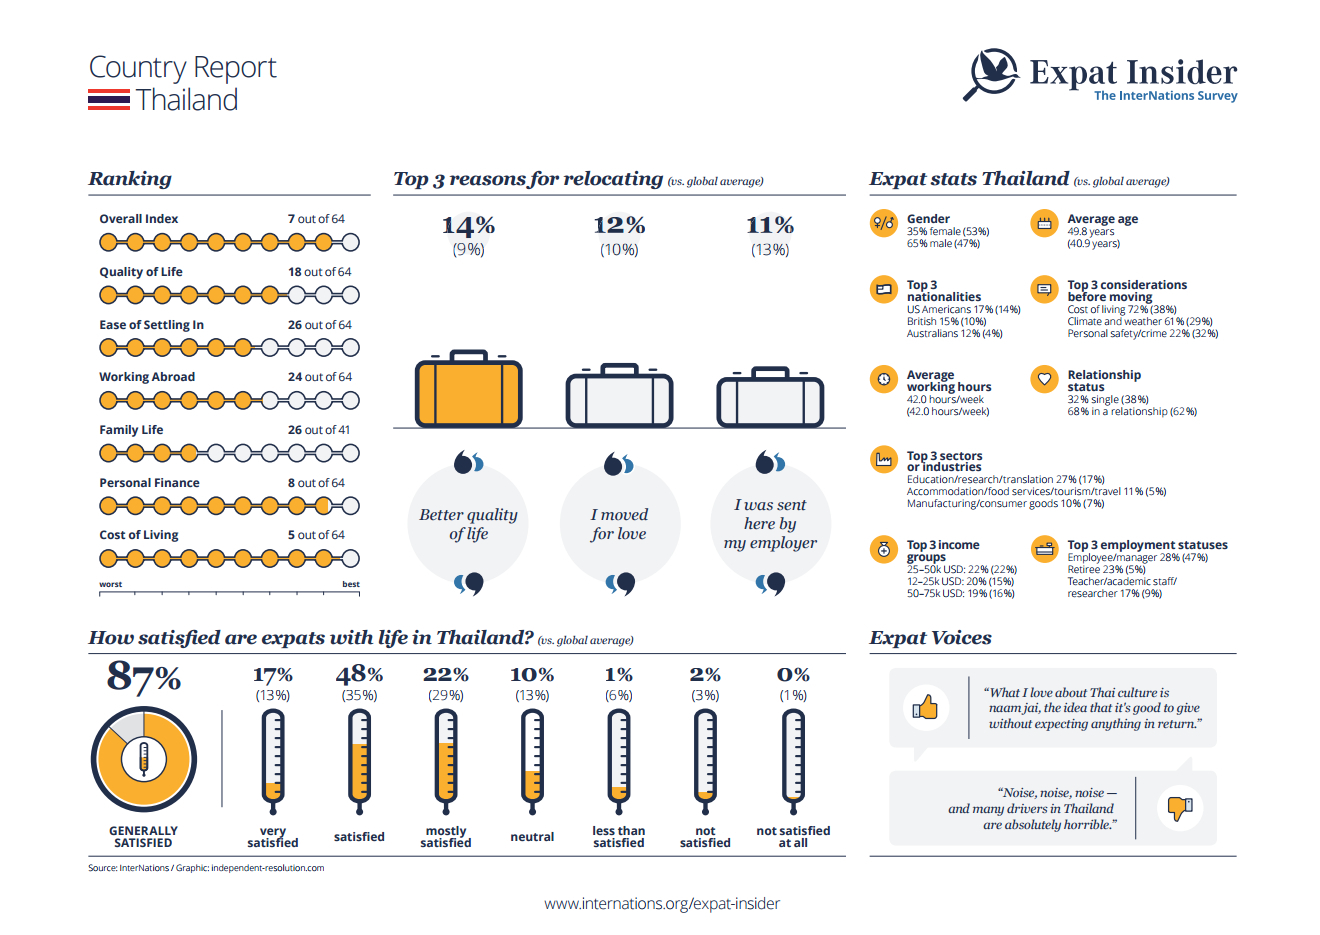 Expat statistics for Thailand - infographic